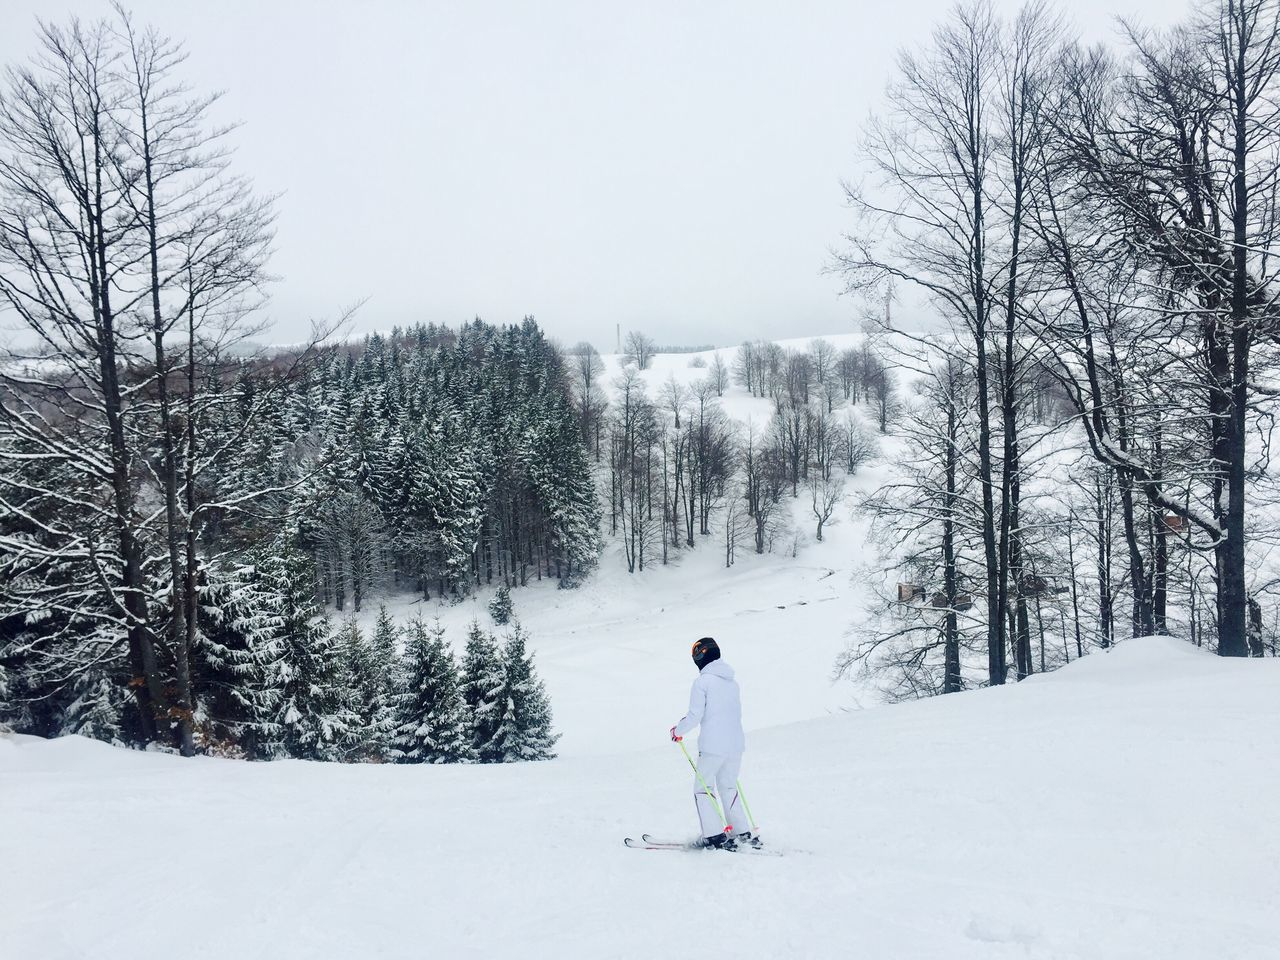 Woman in white skiing on the slope Winter Snow Cold Temperature Tree Real People Lifestyles Nature Weather Bare Tree One Person Leisure Activity Warm Clothing Day Full Length Outdoors Beauty In Nature Landscape Sky Skiing Skier Slope Alone Snow